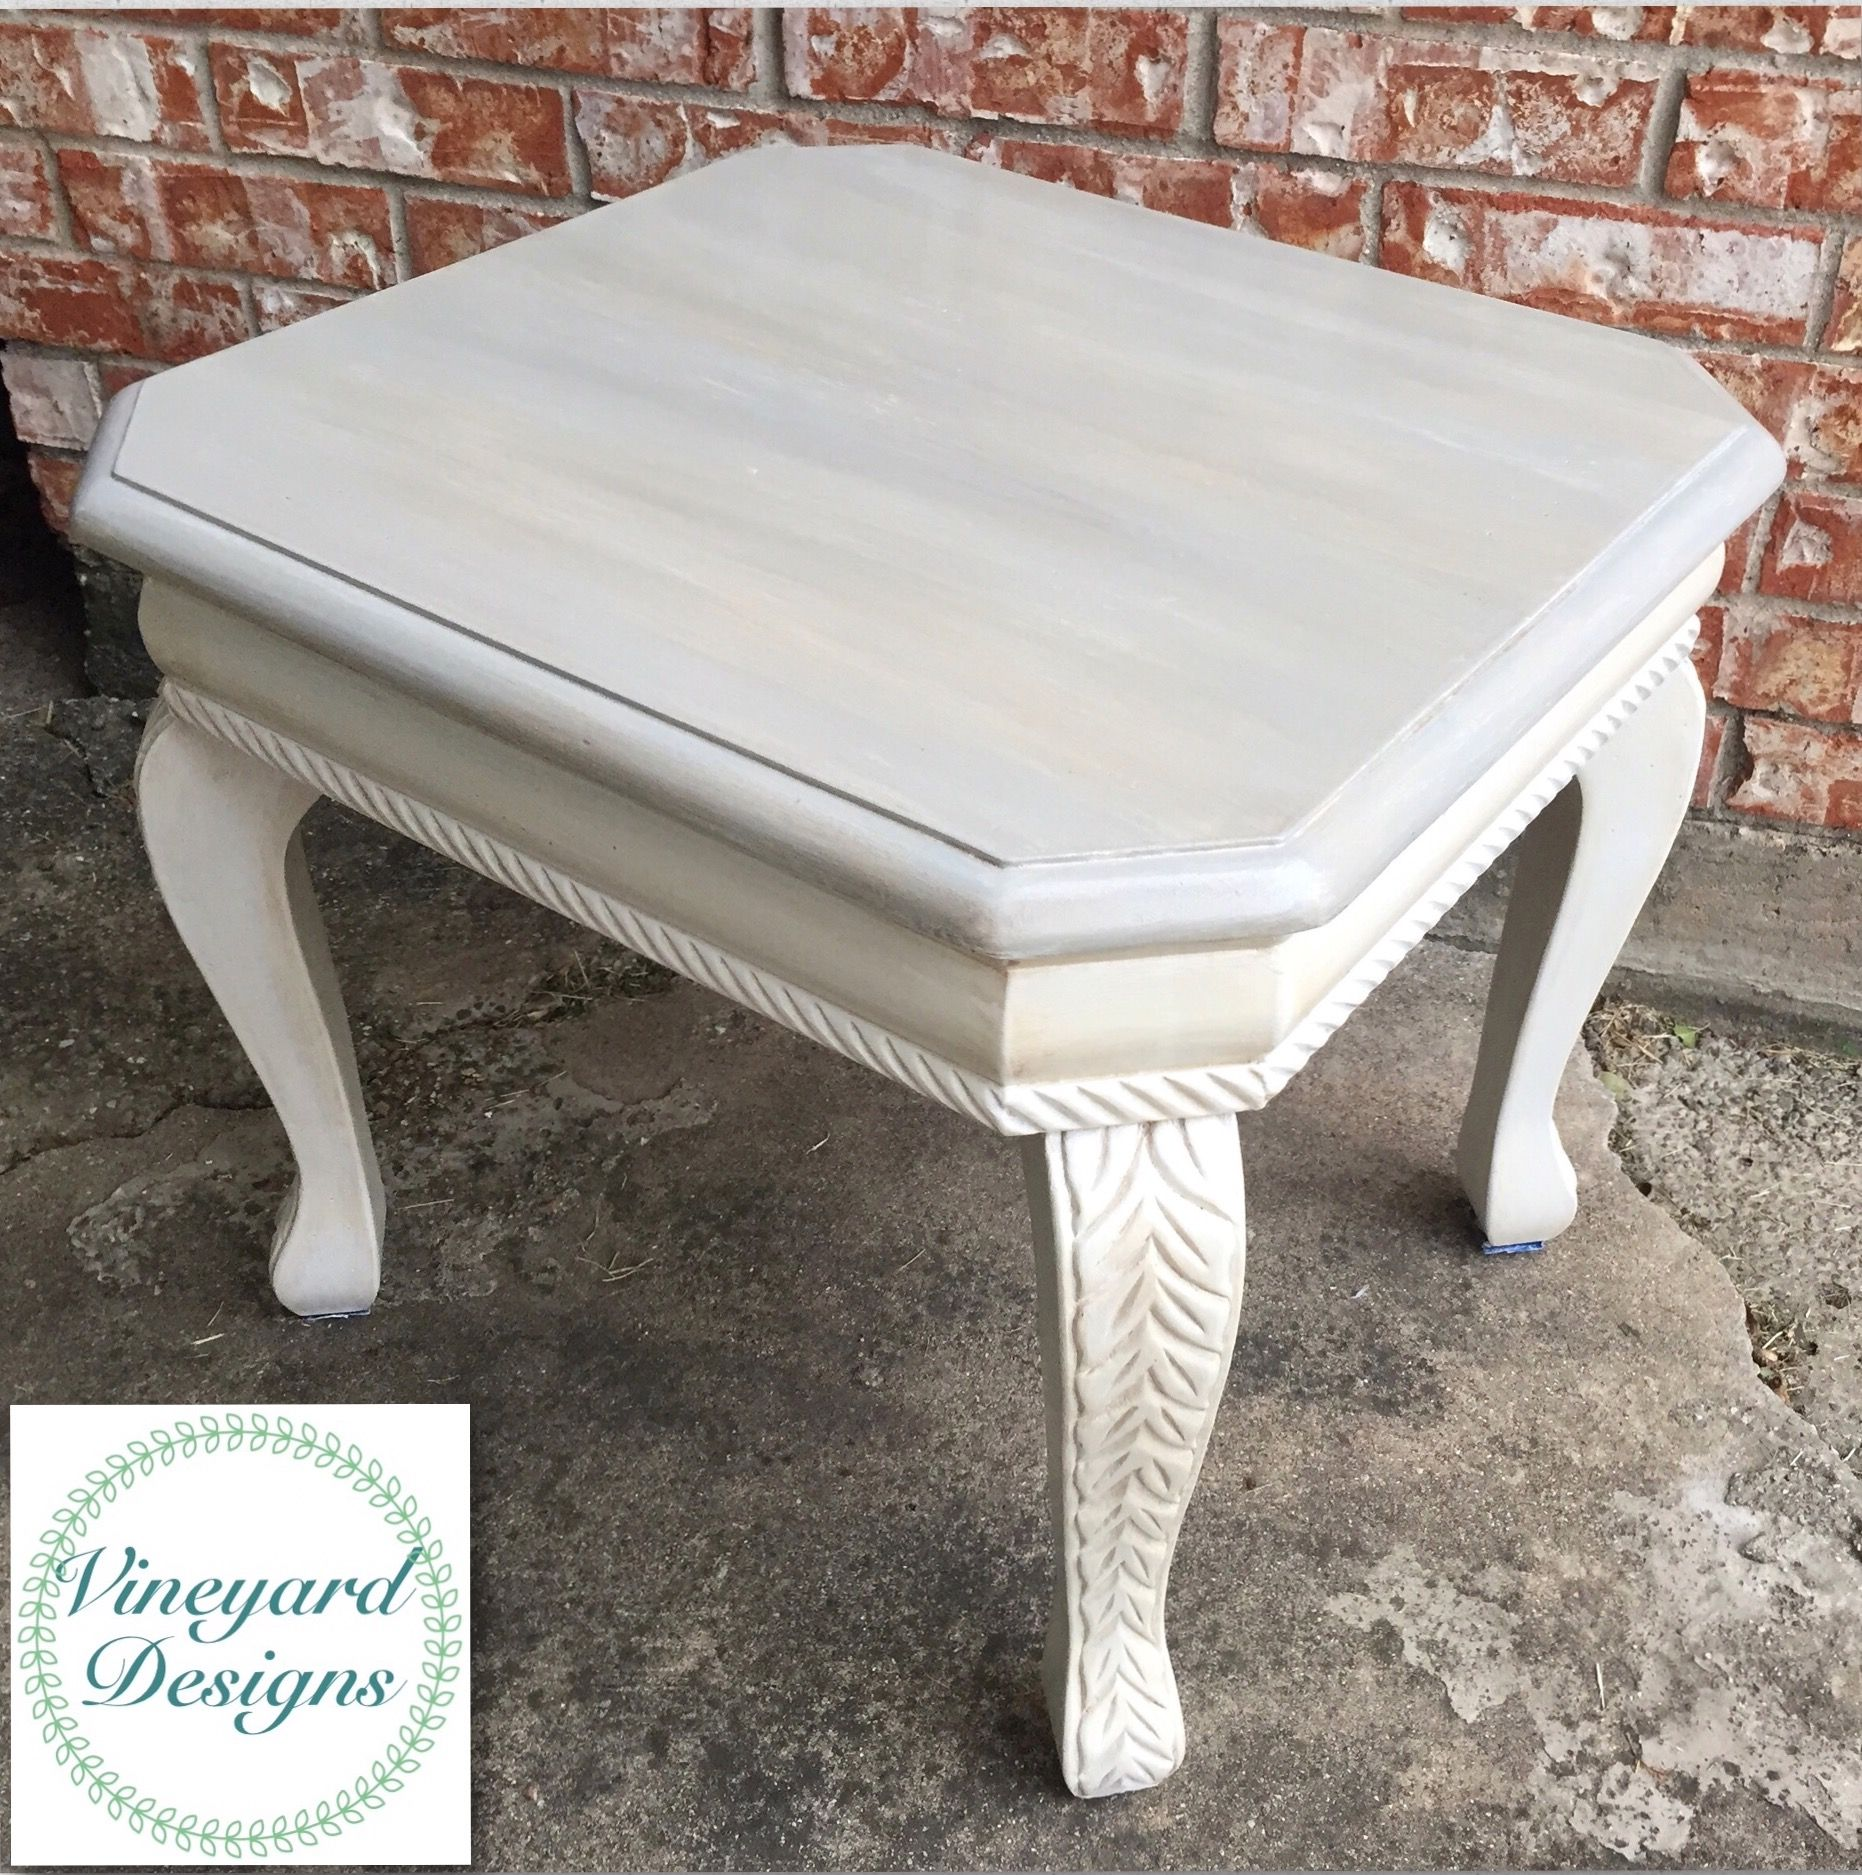 This beautiful end table was painted with gray paint white chalk